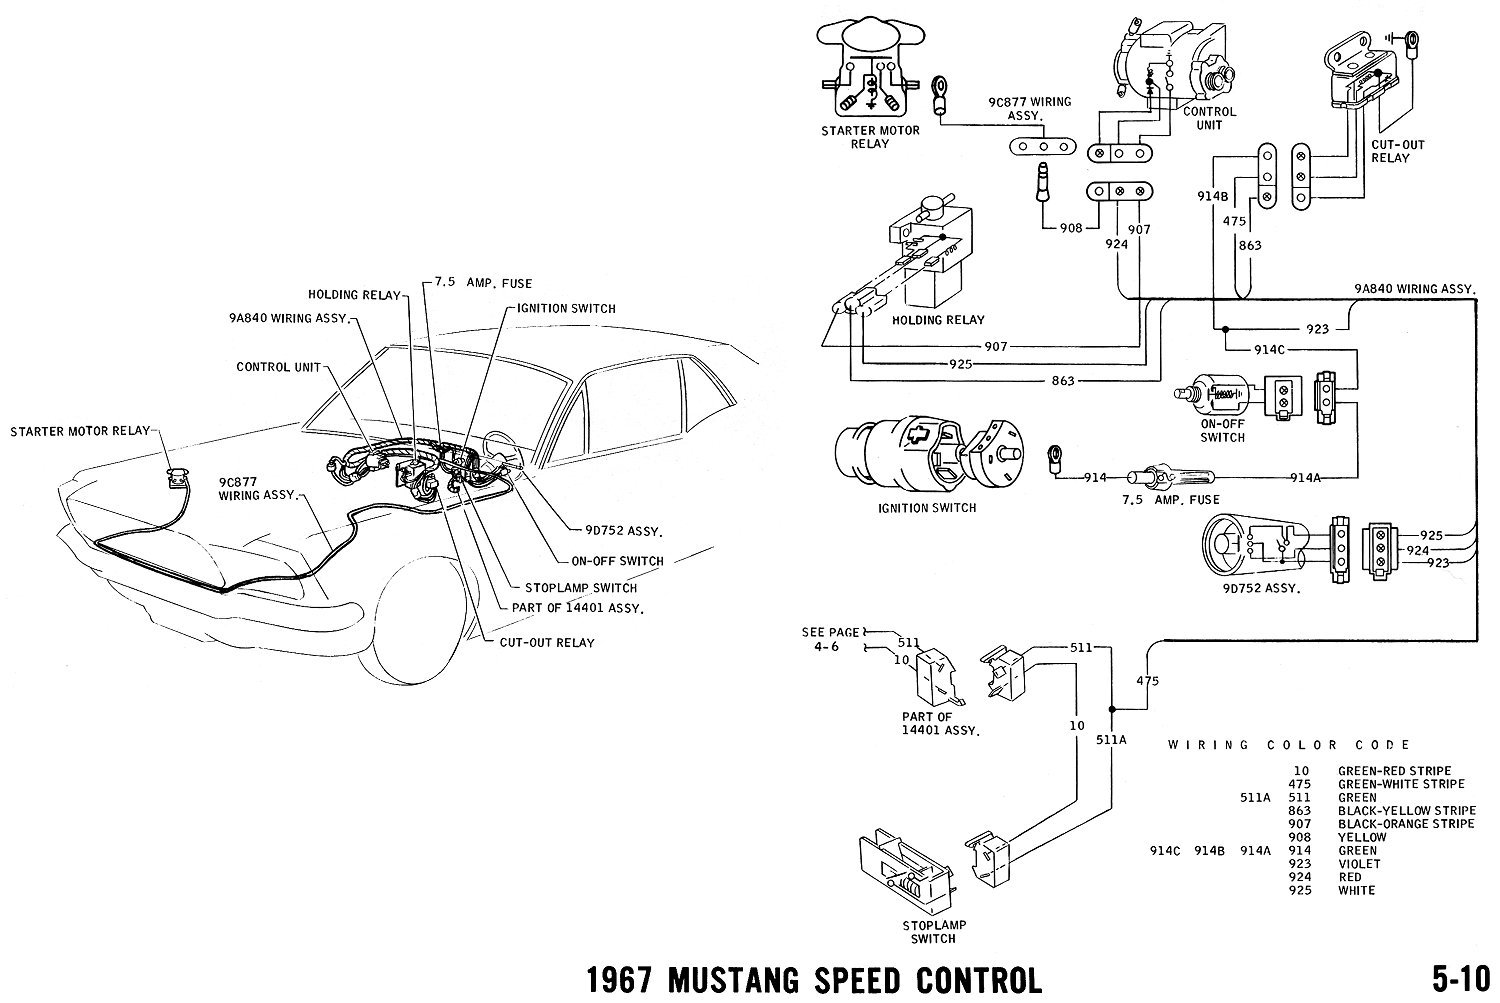 67speed 1967 mustang wiring and vacuum diagrams average joe restoration 1967 mustang wiring diagram at alyssarenee.co